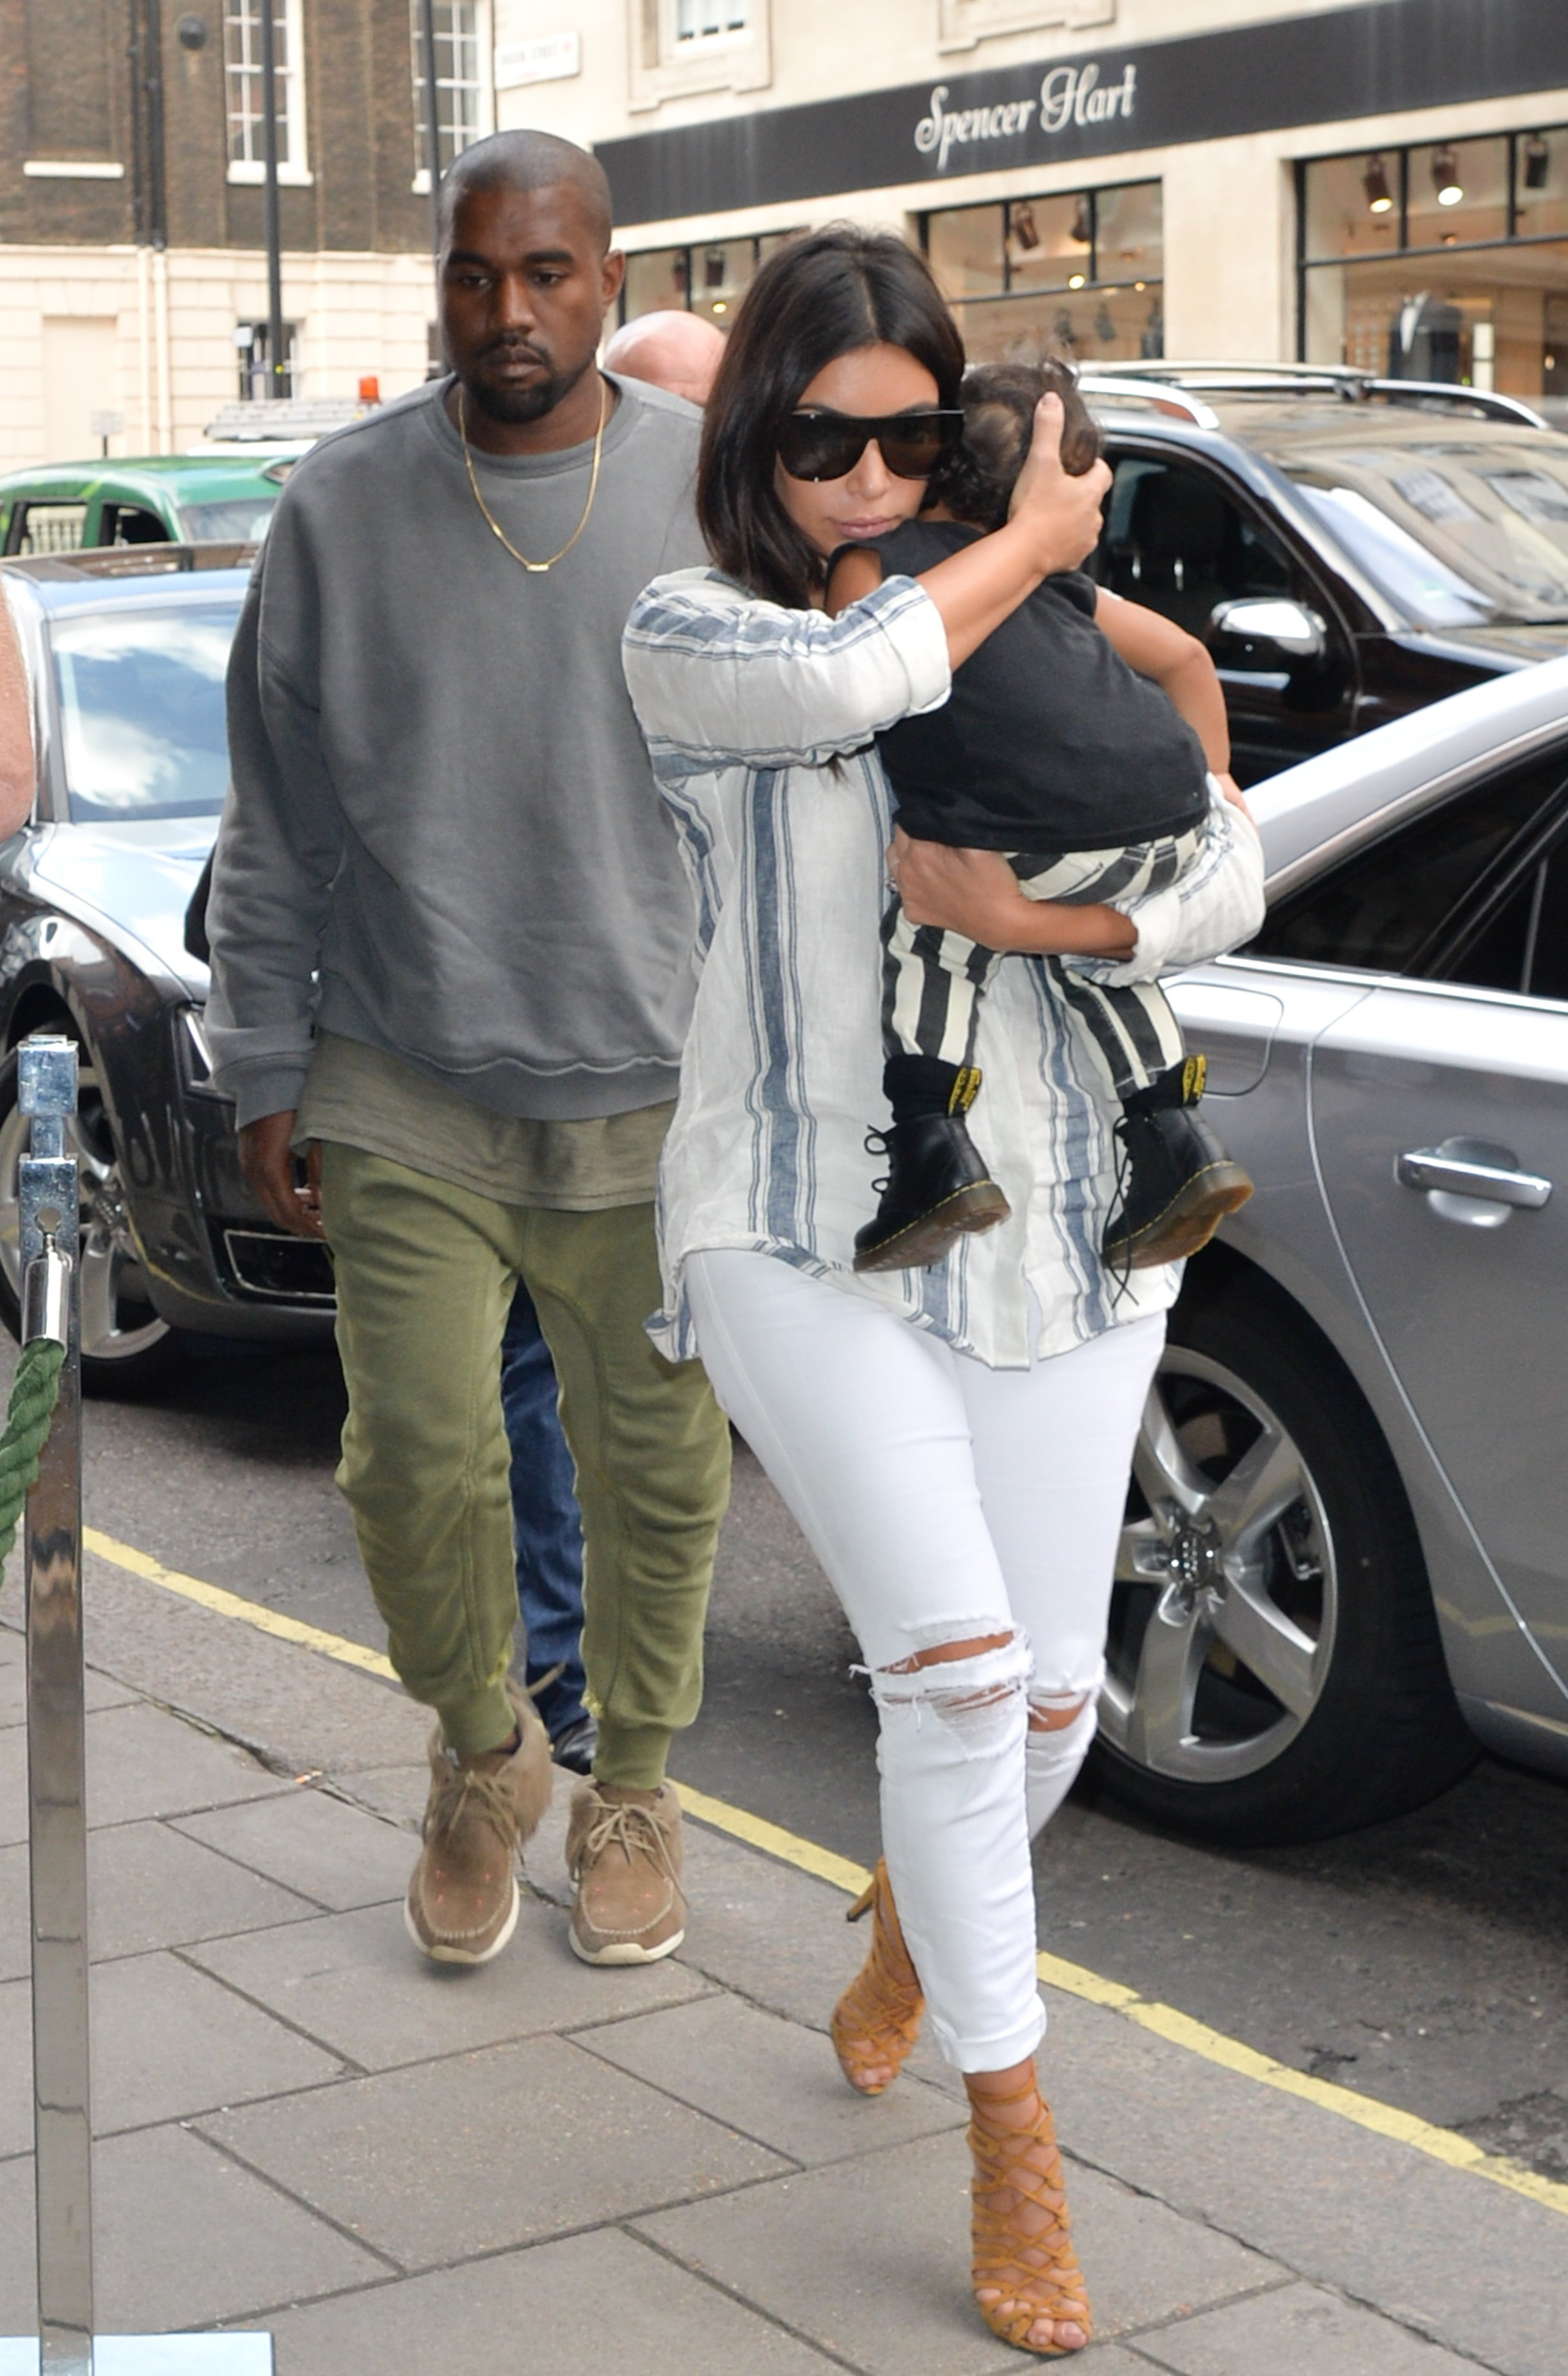 Kim Kardashian and Kanye West seen arriving at their hotel with their daughter North West on September 2, 2014 in London.